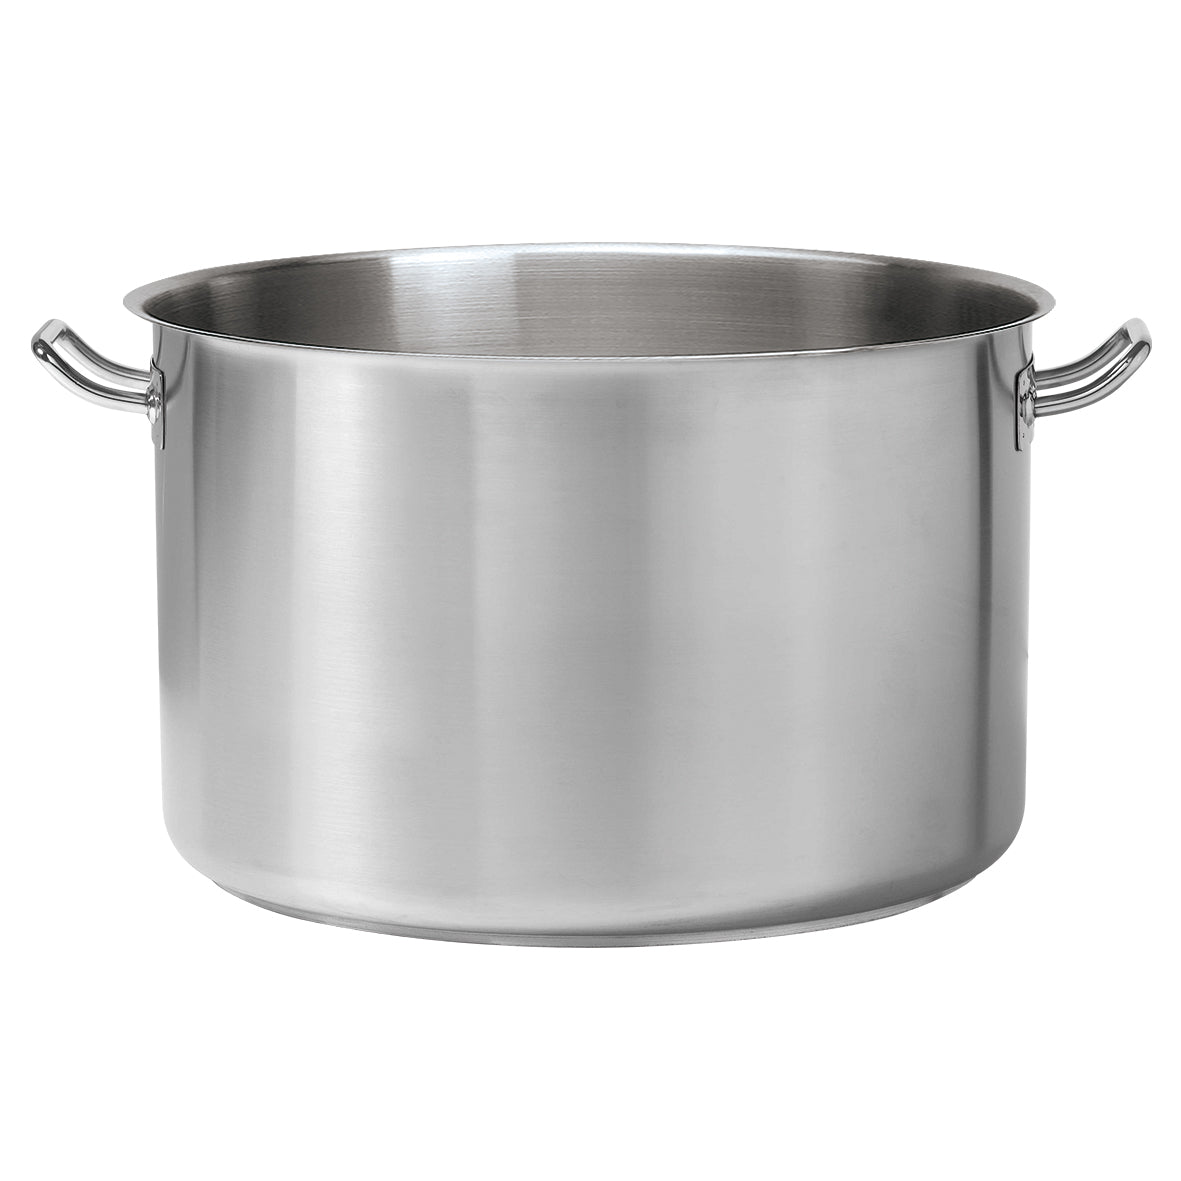 Artame 18/10 Stainless Steel Deep Casseroles